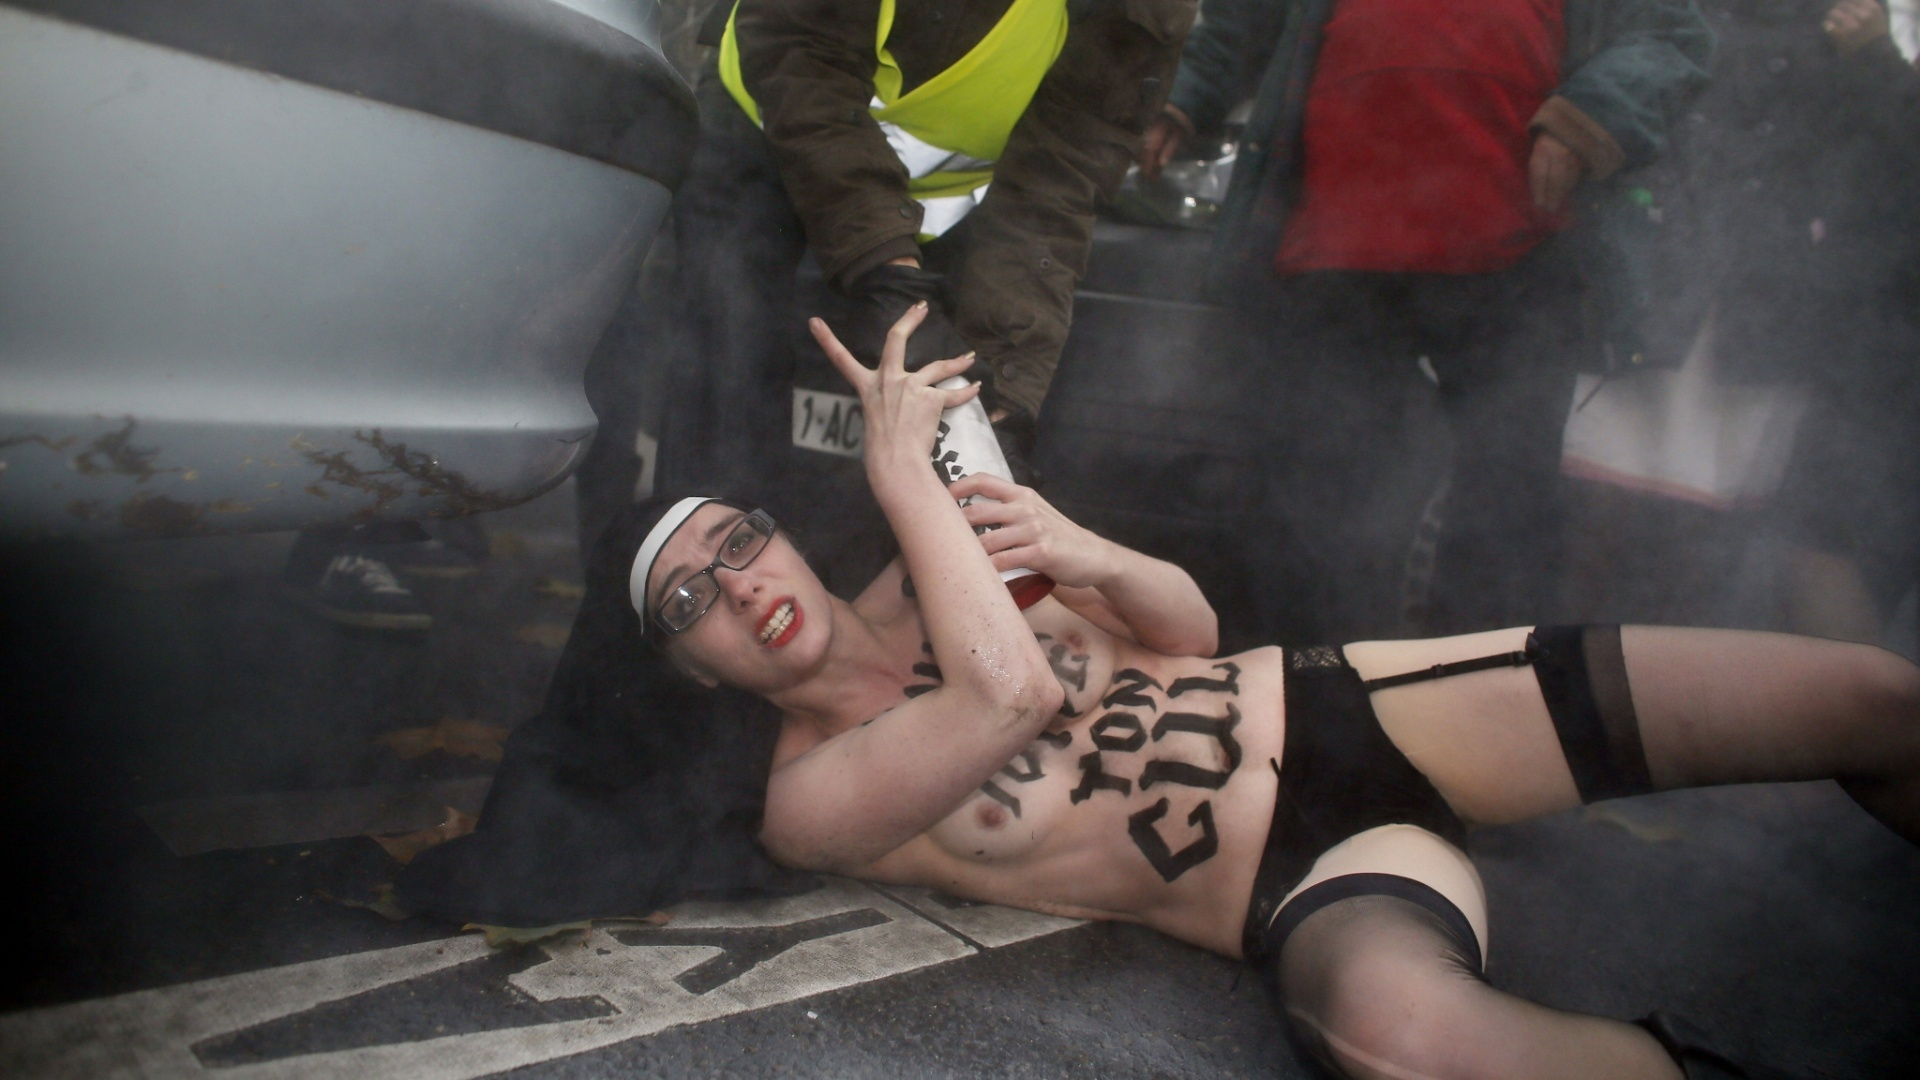 18.nov.2012 - Ativista do grupo feminista Femen  contida durante protesto neste domingo, em Paris (Frana), contra a oposio da Igreja Catlica ao casamento gay